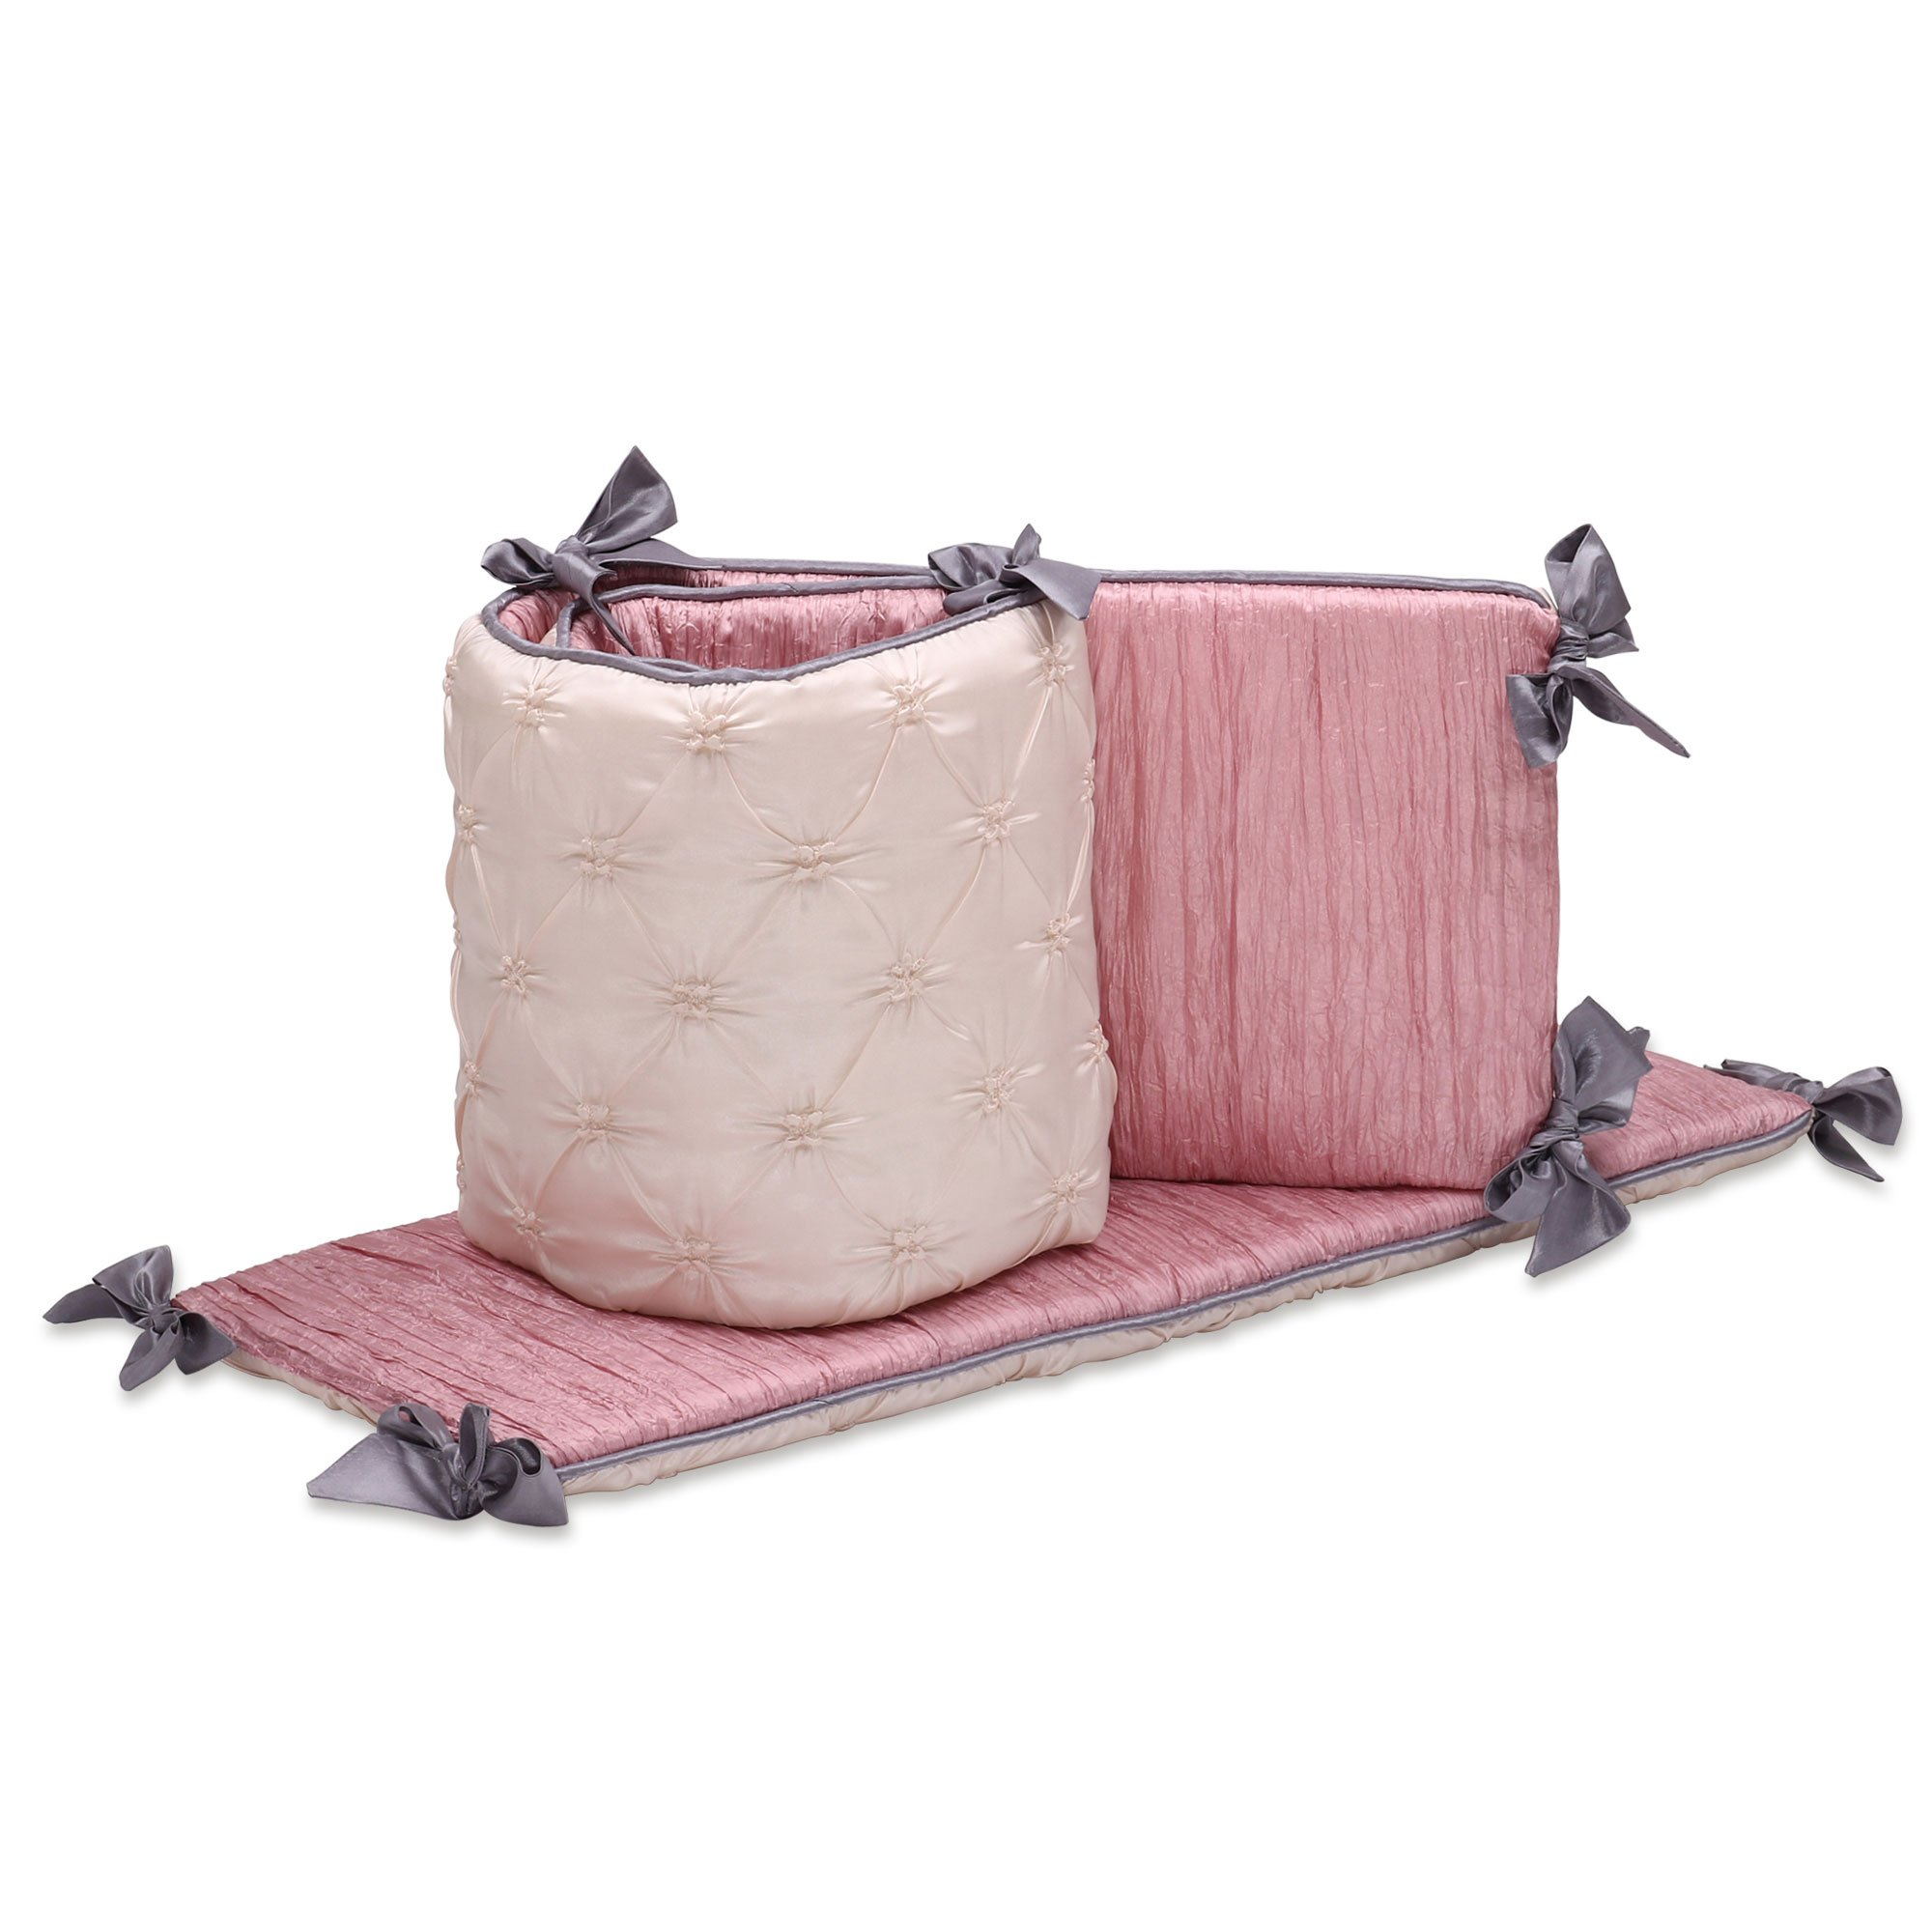 Bella Baby Girl Crib Bumper by The Peanut Shell by The Peanut Shell